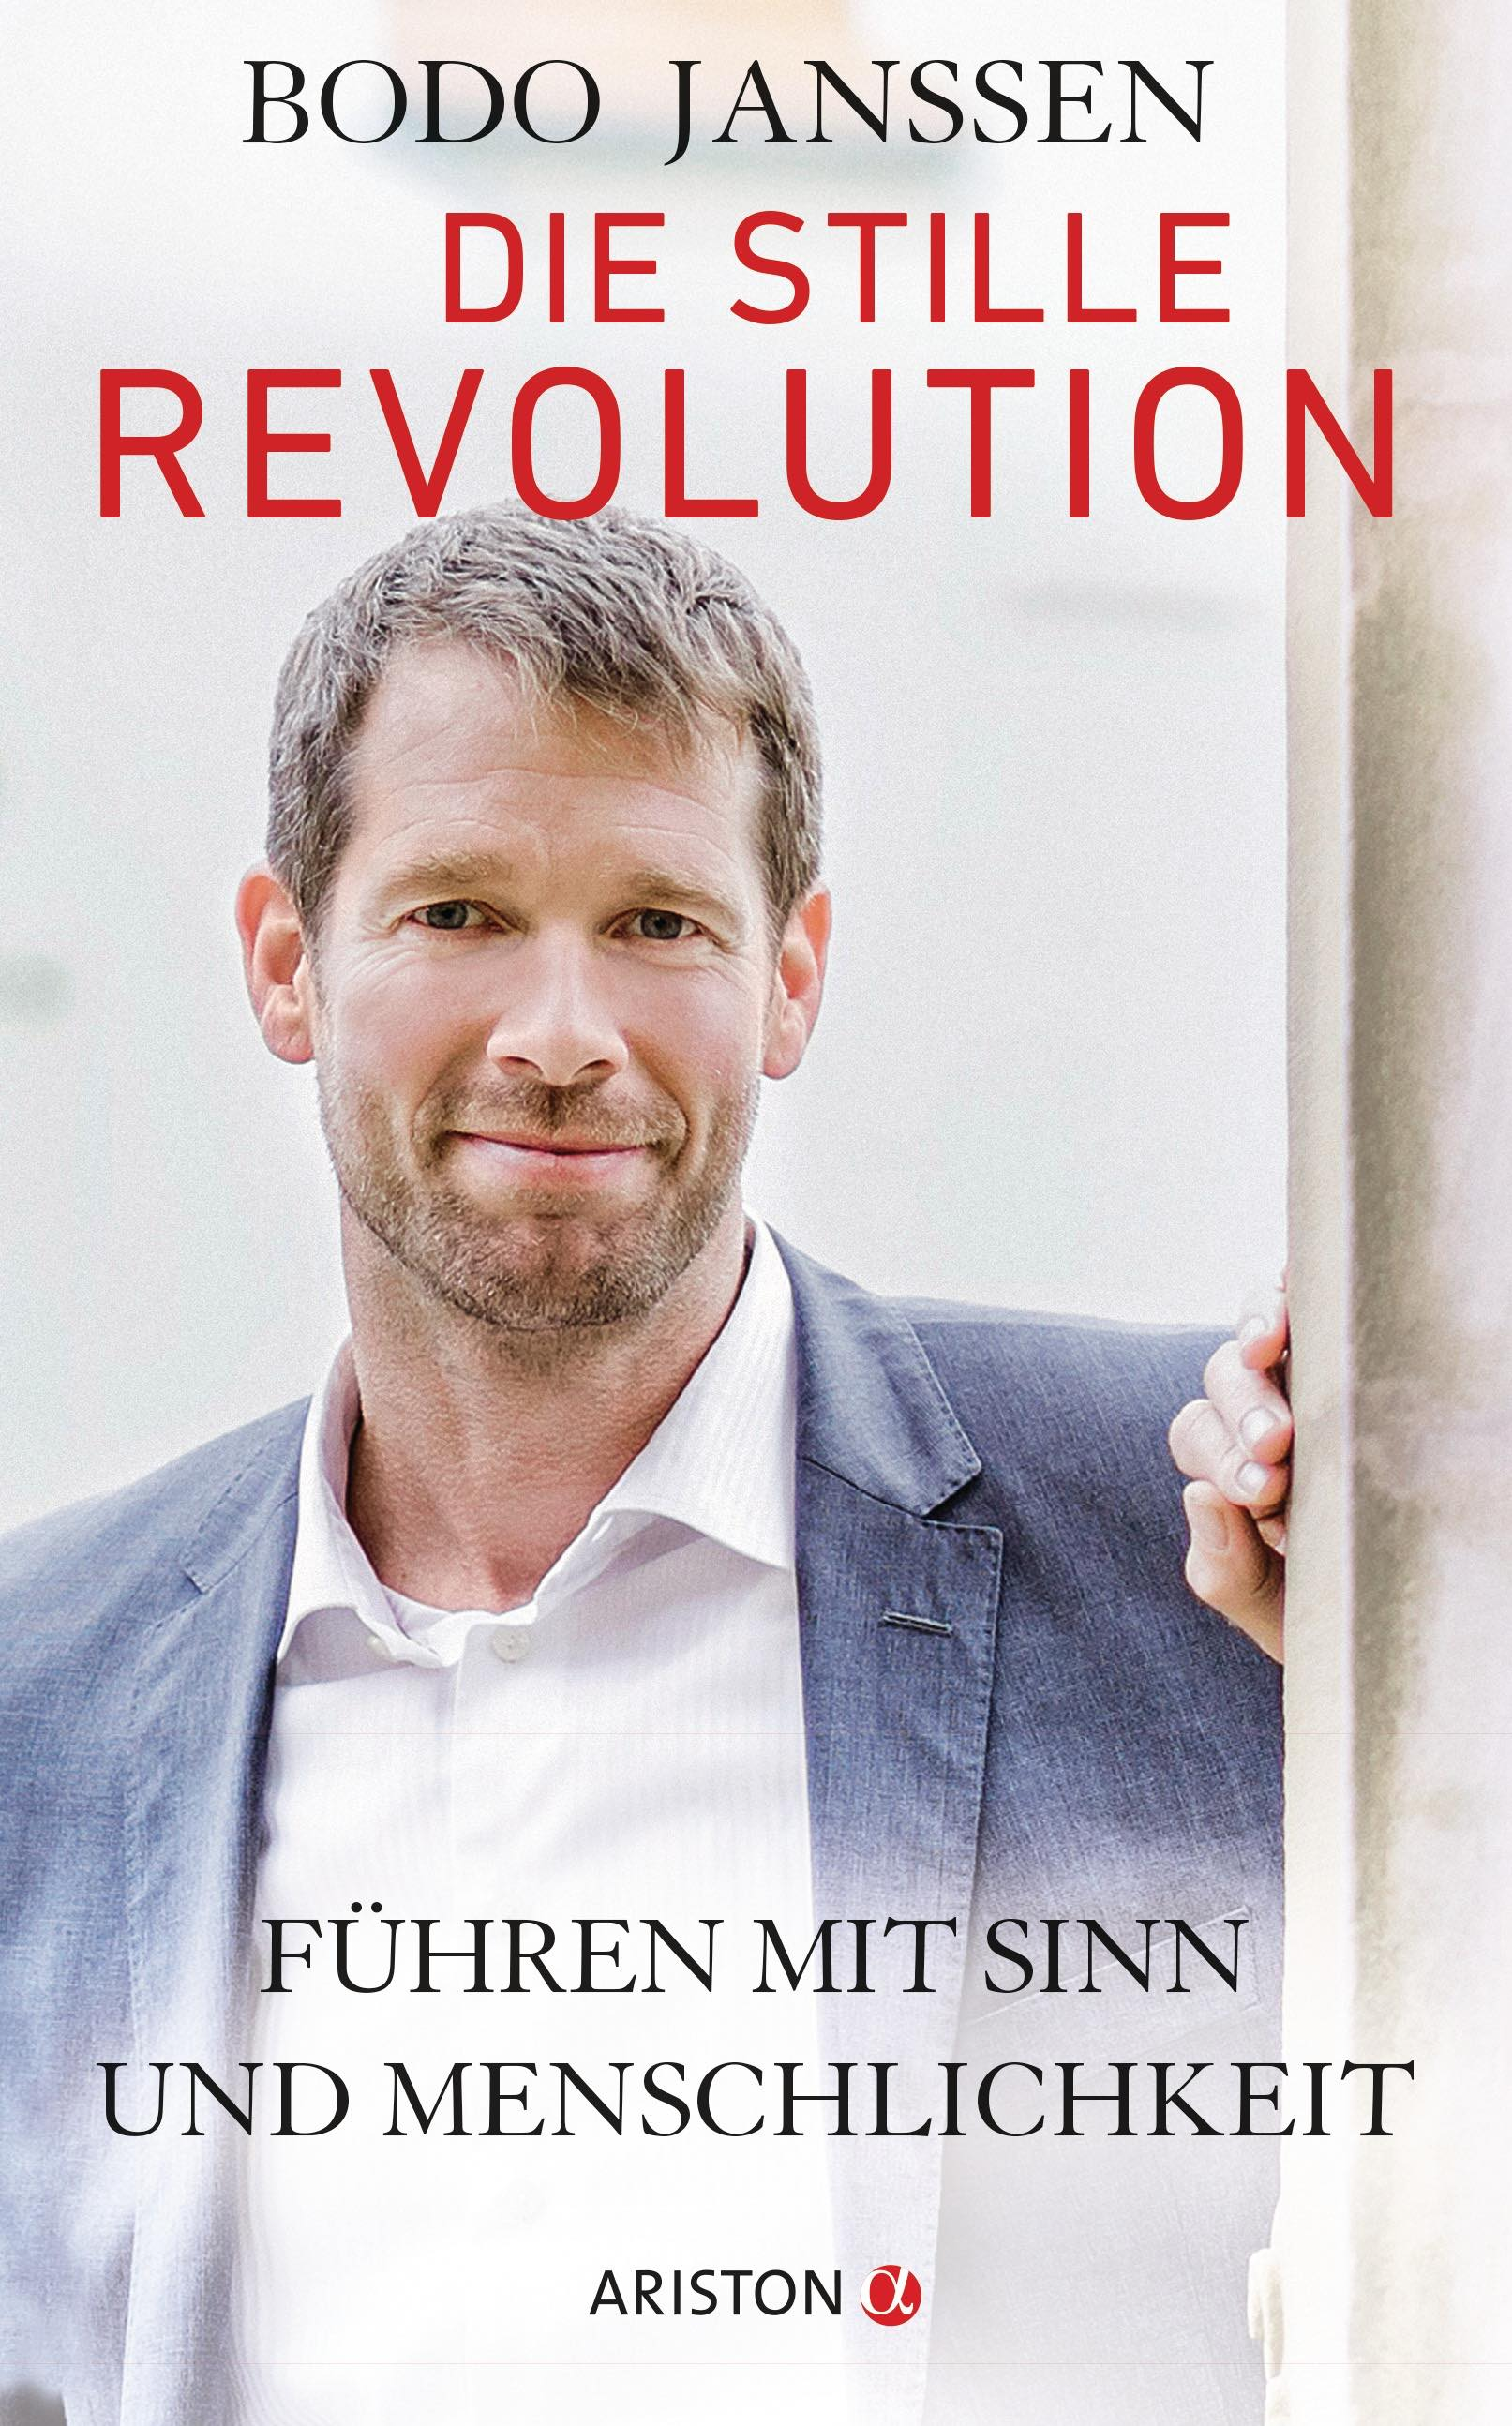 """Die stille Revolution"" bei Amazon"